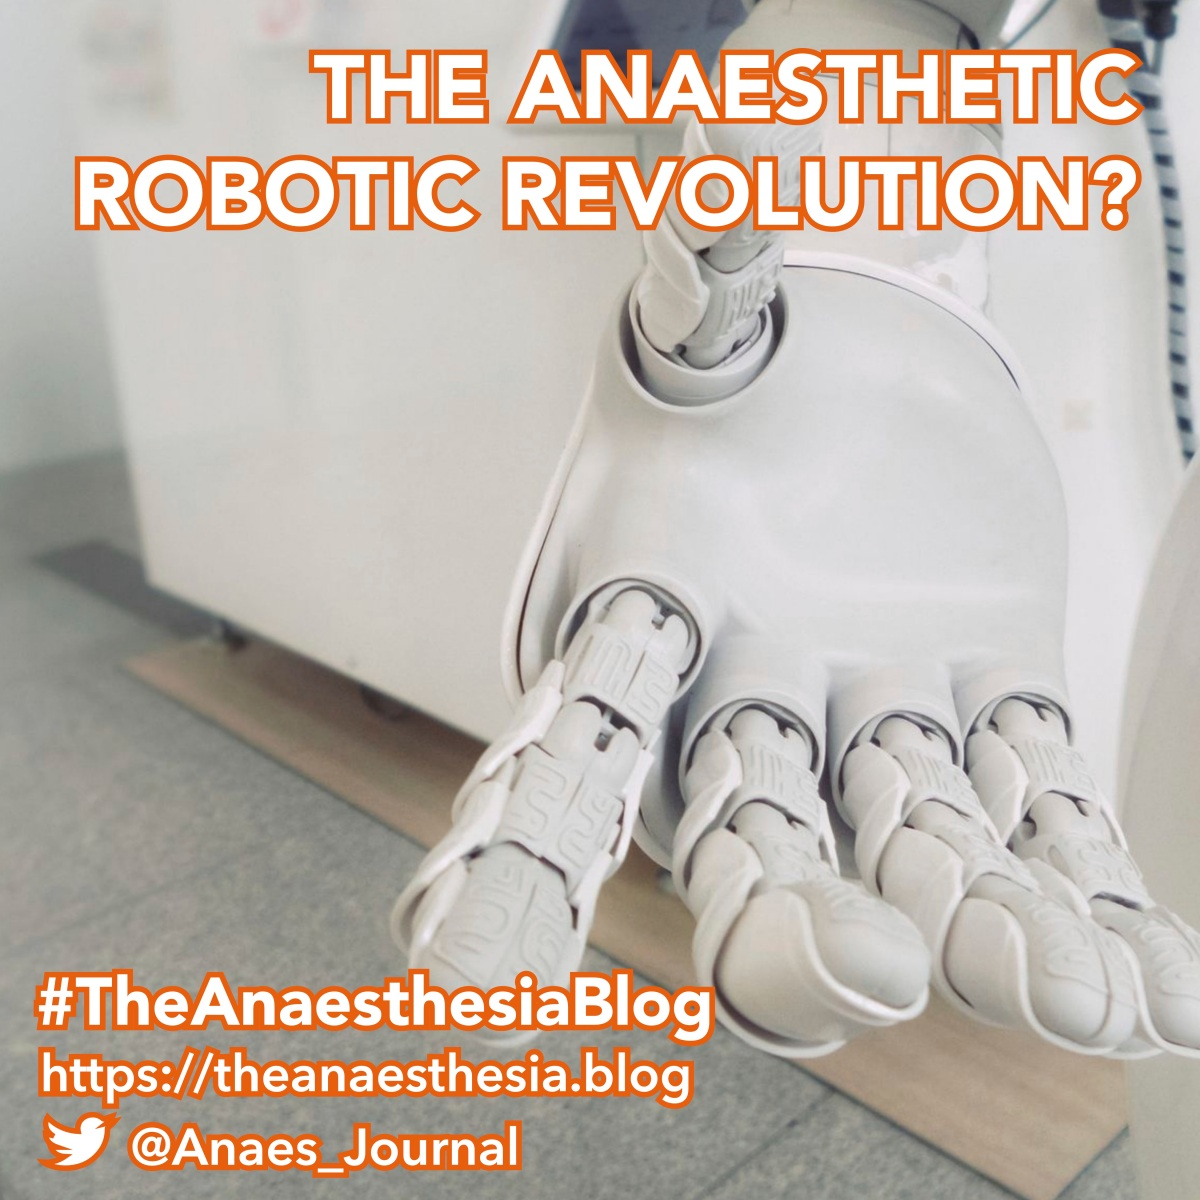 The anaesthetic robotic revolution?